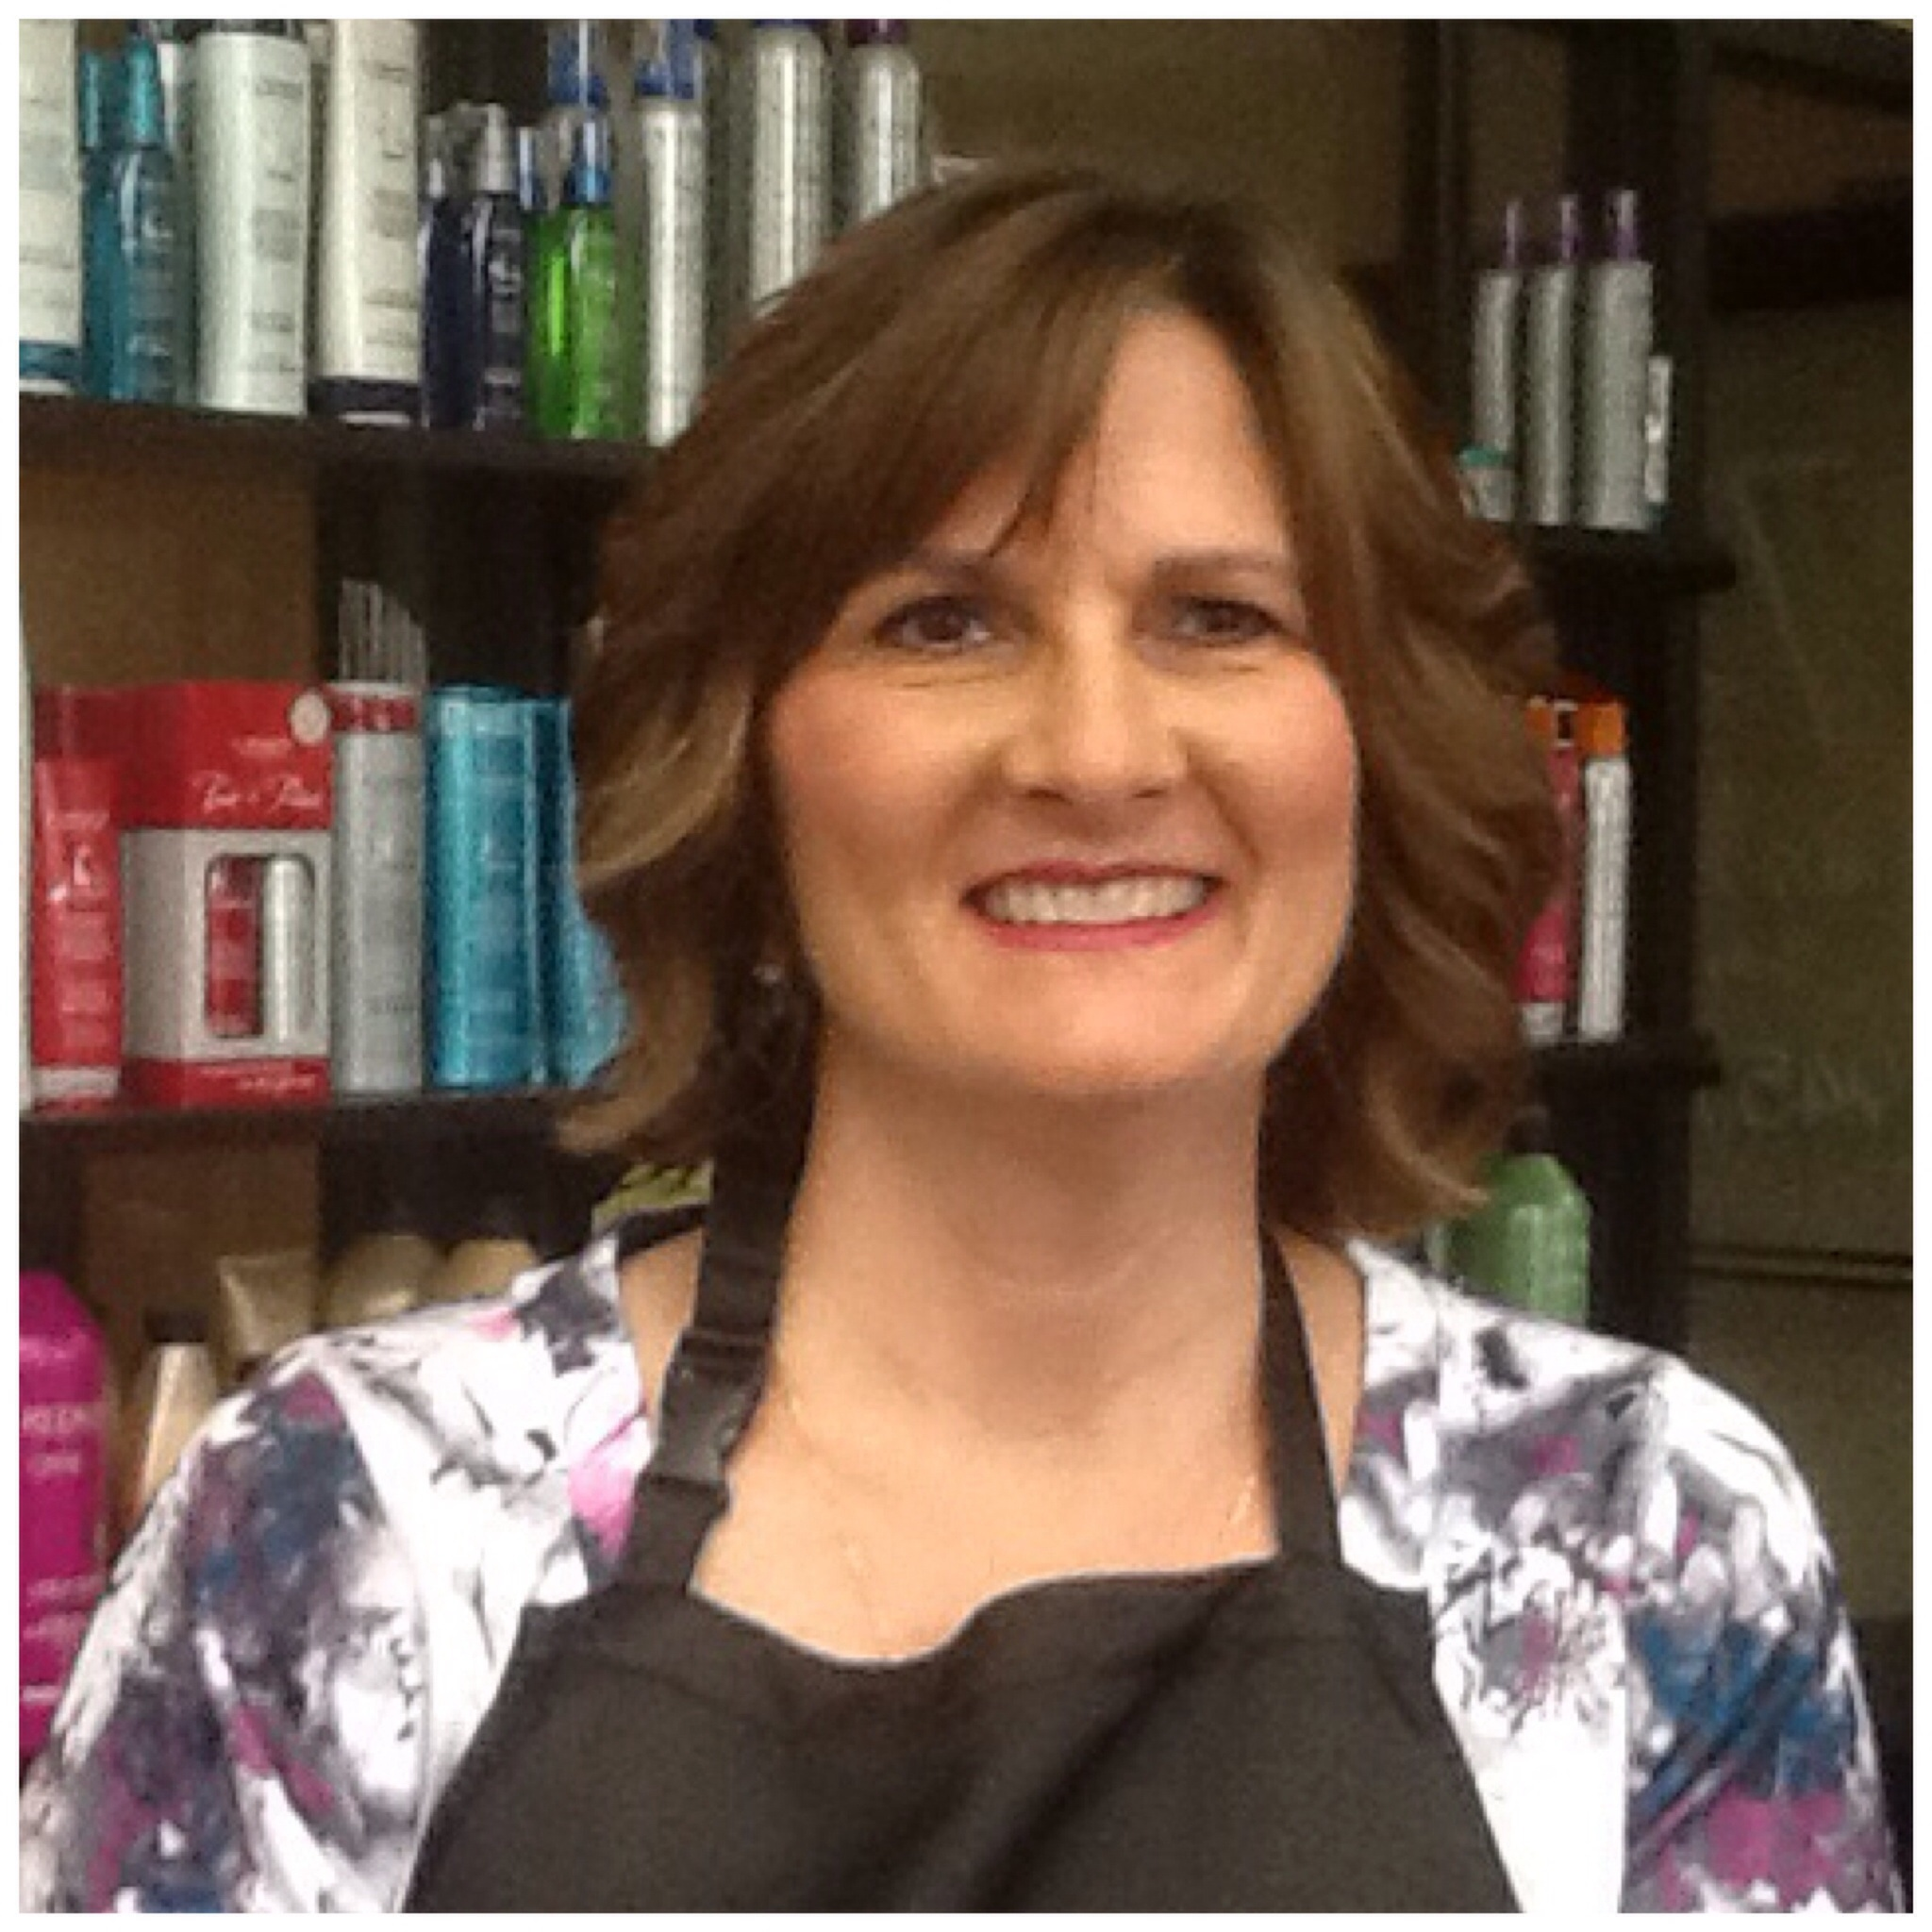 Grand Hair Designs - Styles by Suzanne, Glenwood Springs CO